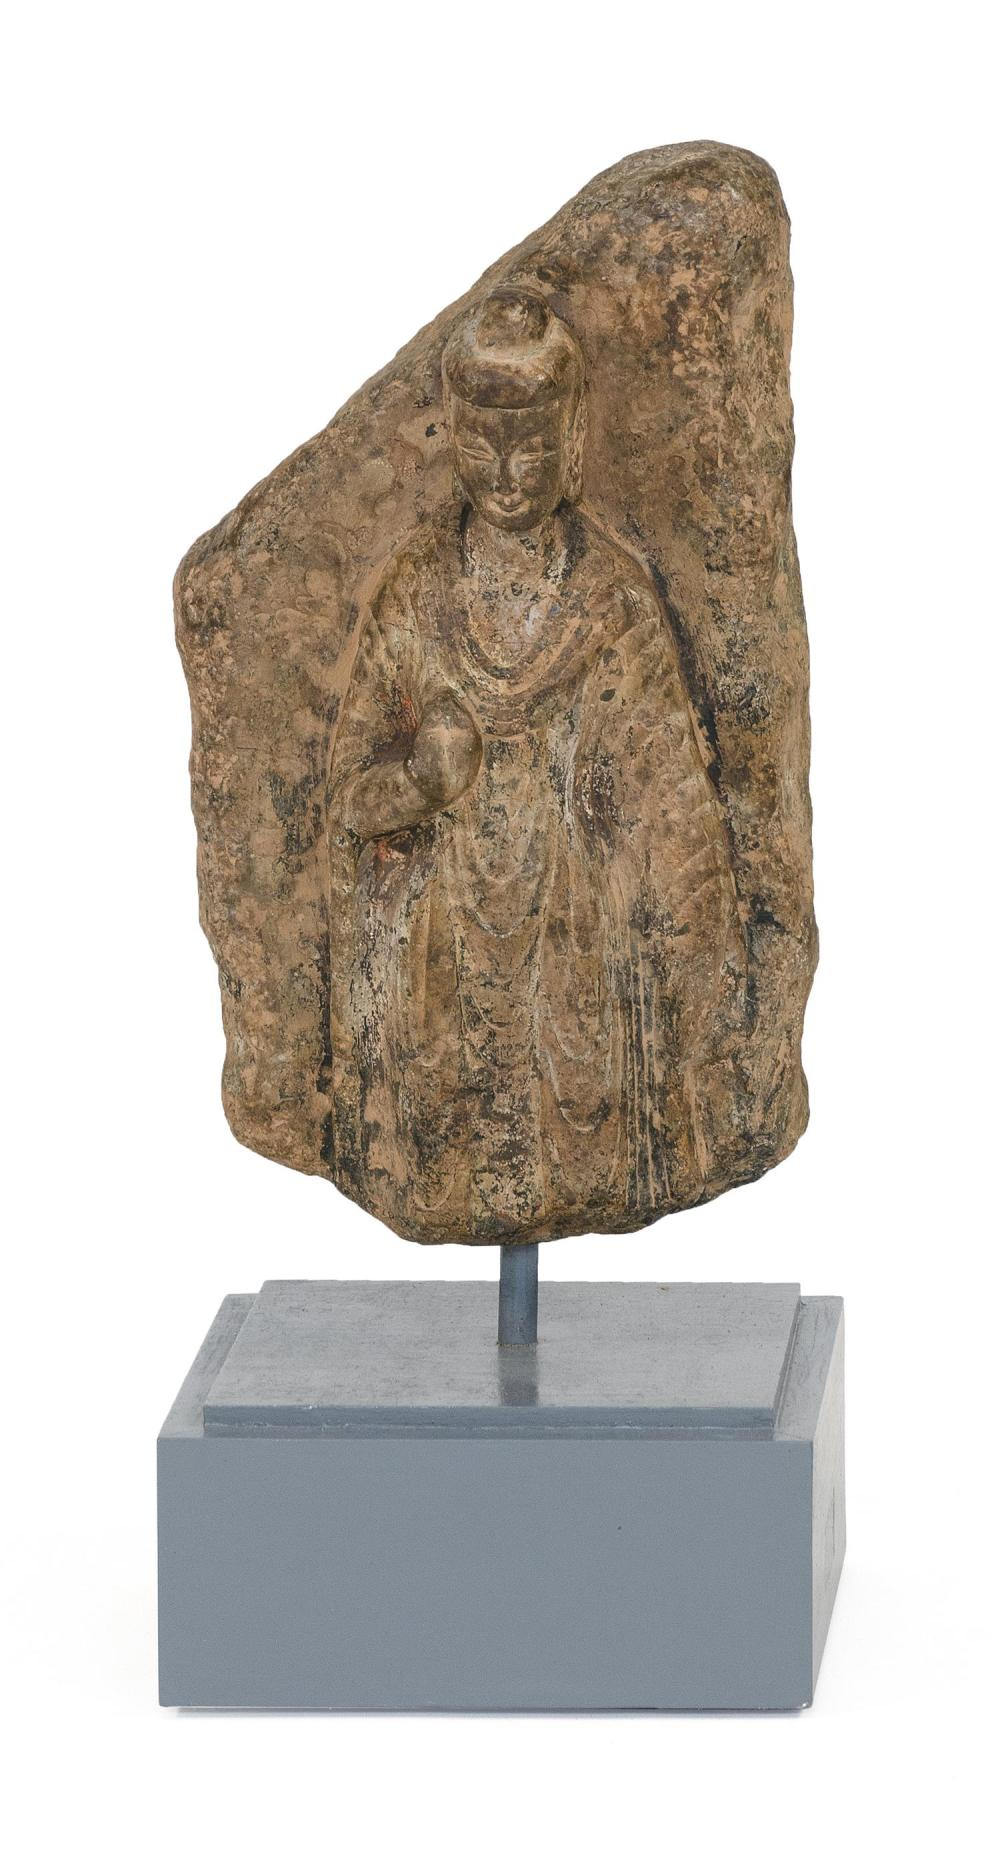 "CHINESE STONE CARVING With high relief depiction of a standing Buddha. Height 15.5"". Separate base."